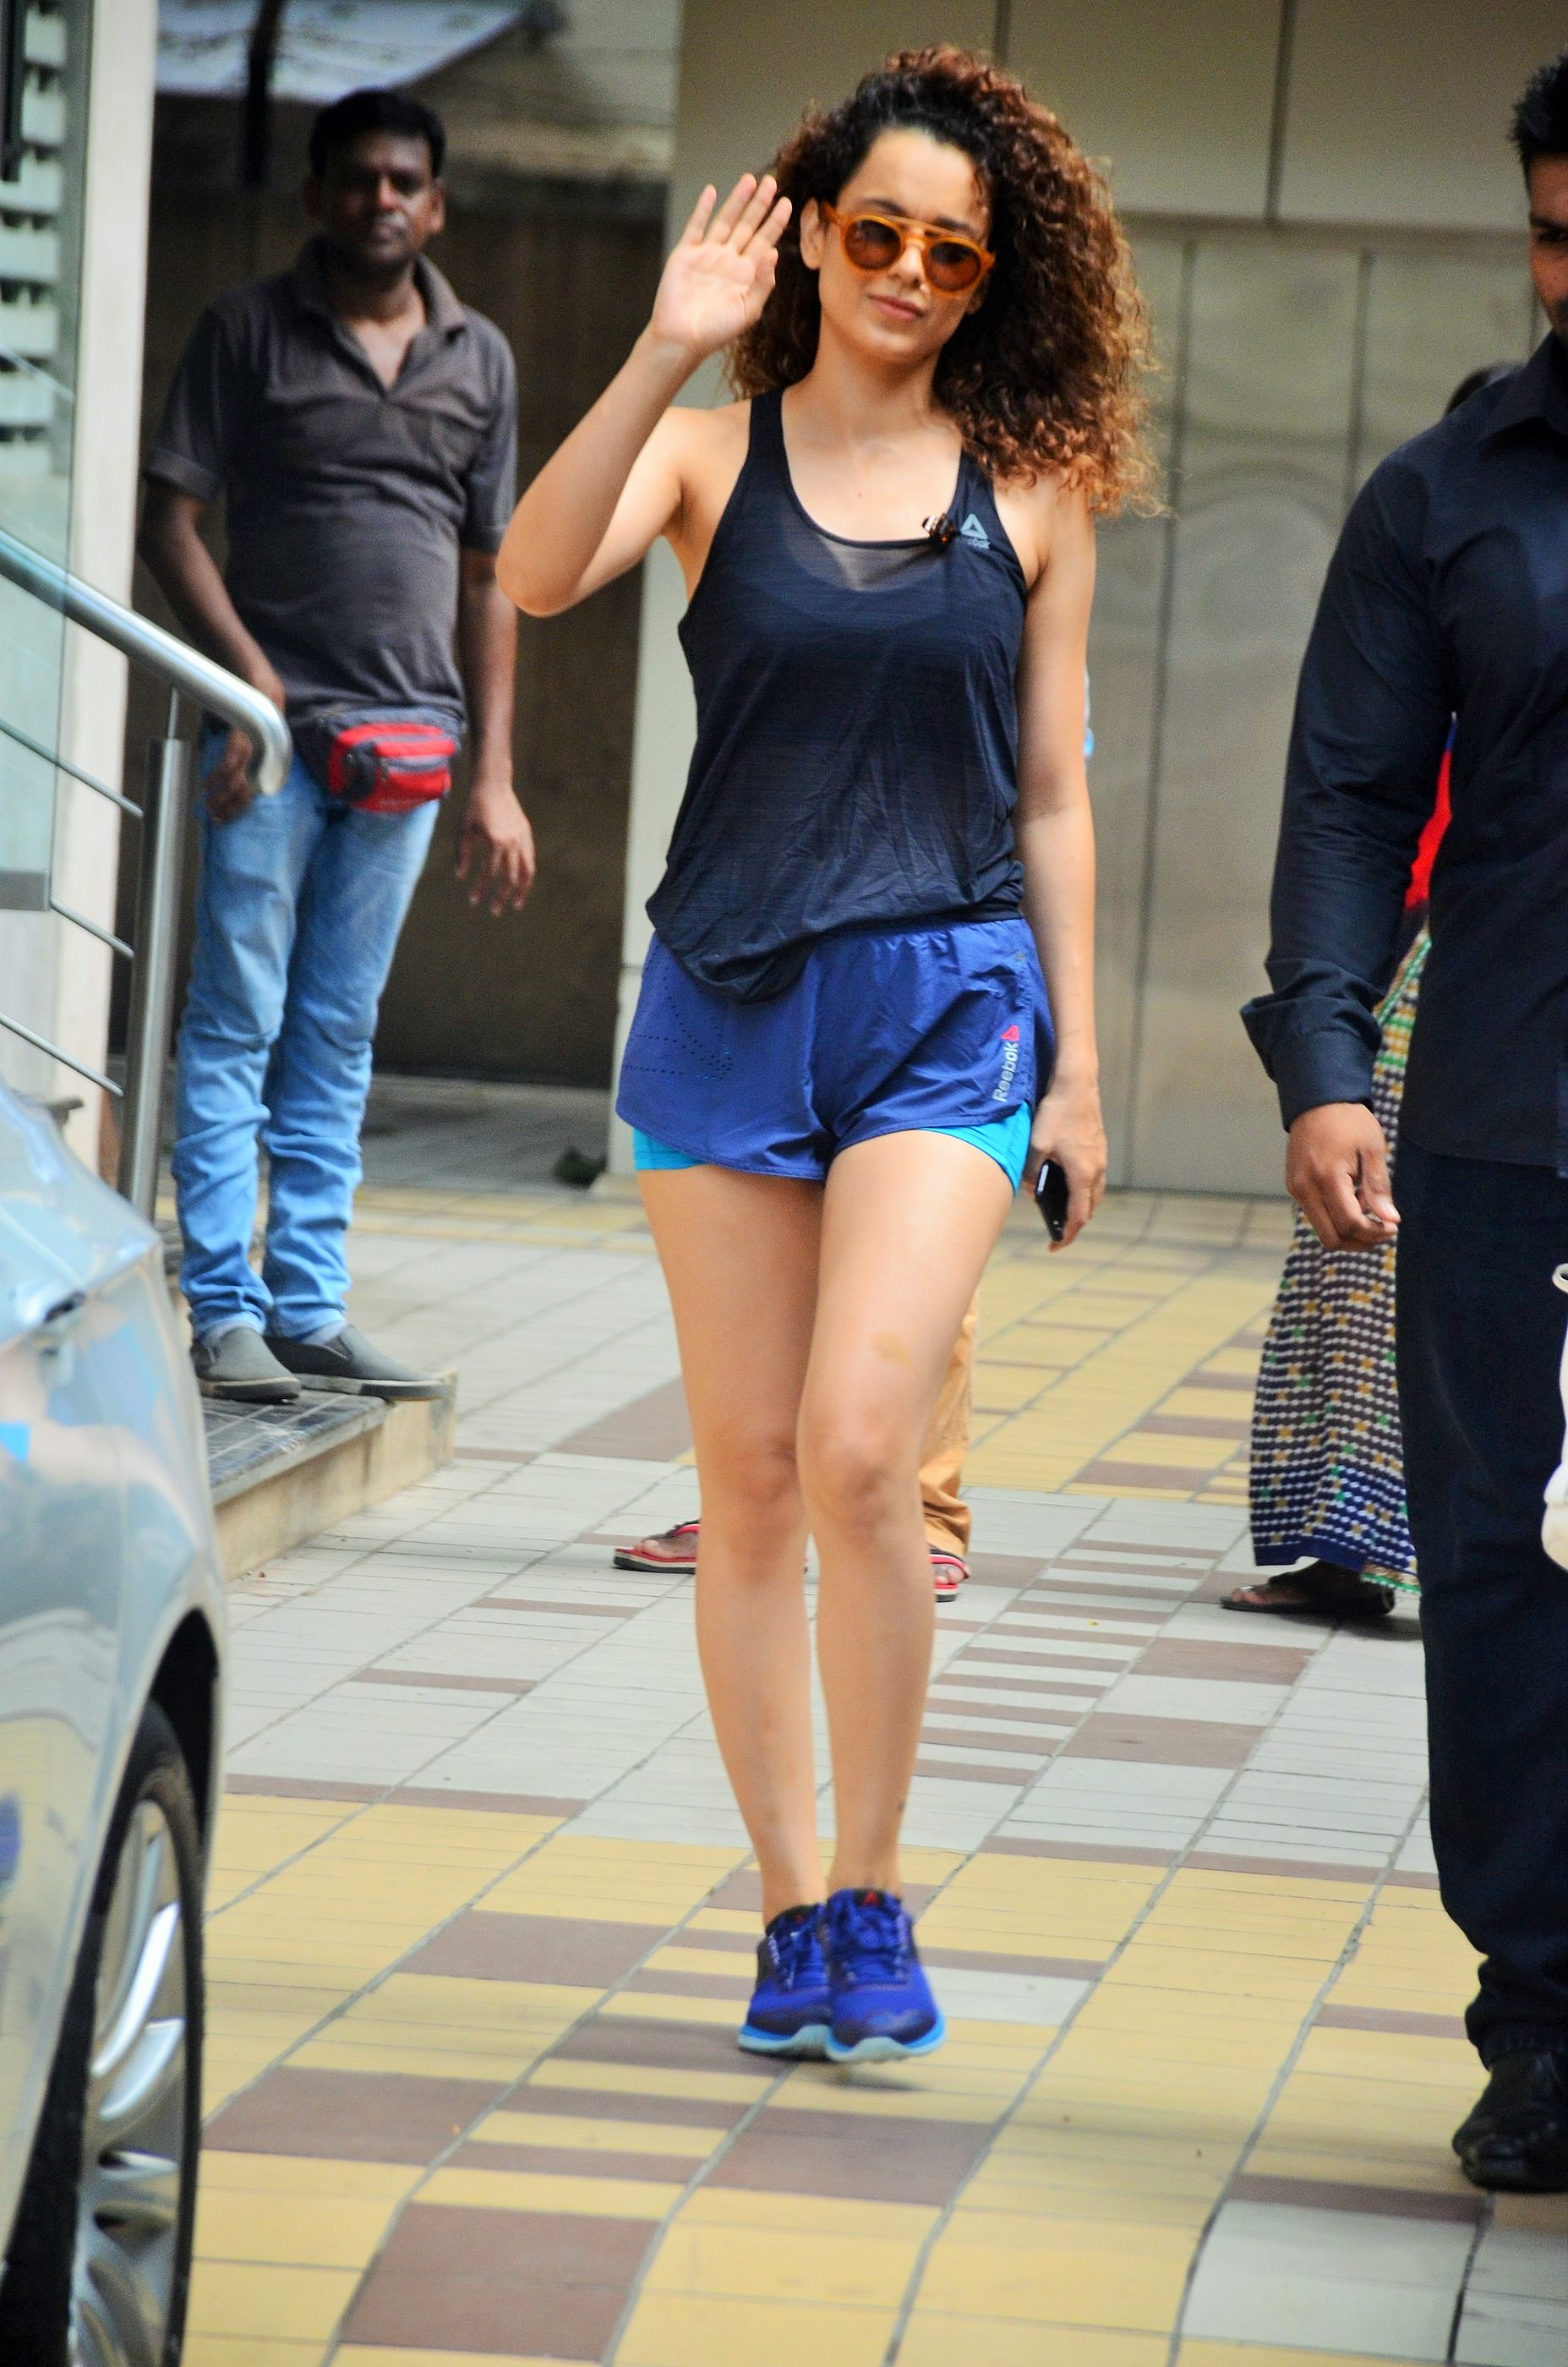 PICS: Check Out What Hrithik Roshan and Kangana Ranaut Have Been Up To Amidst The On-Going Controversy